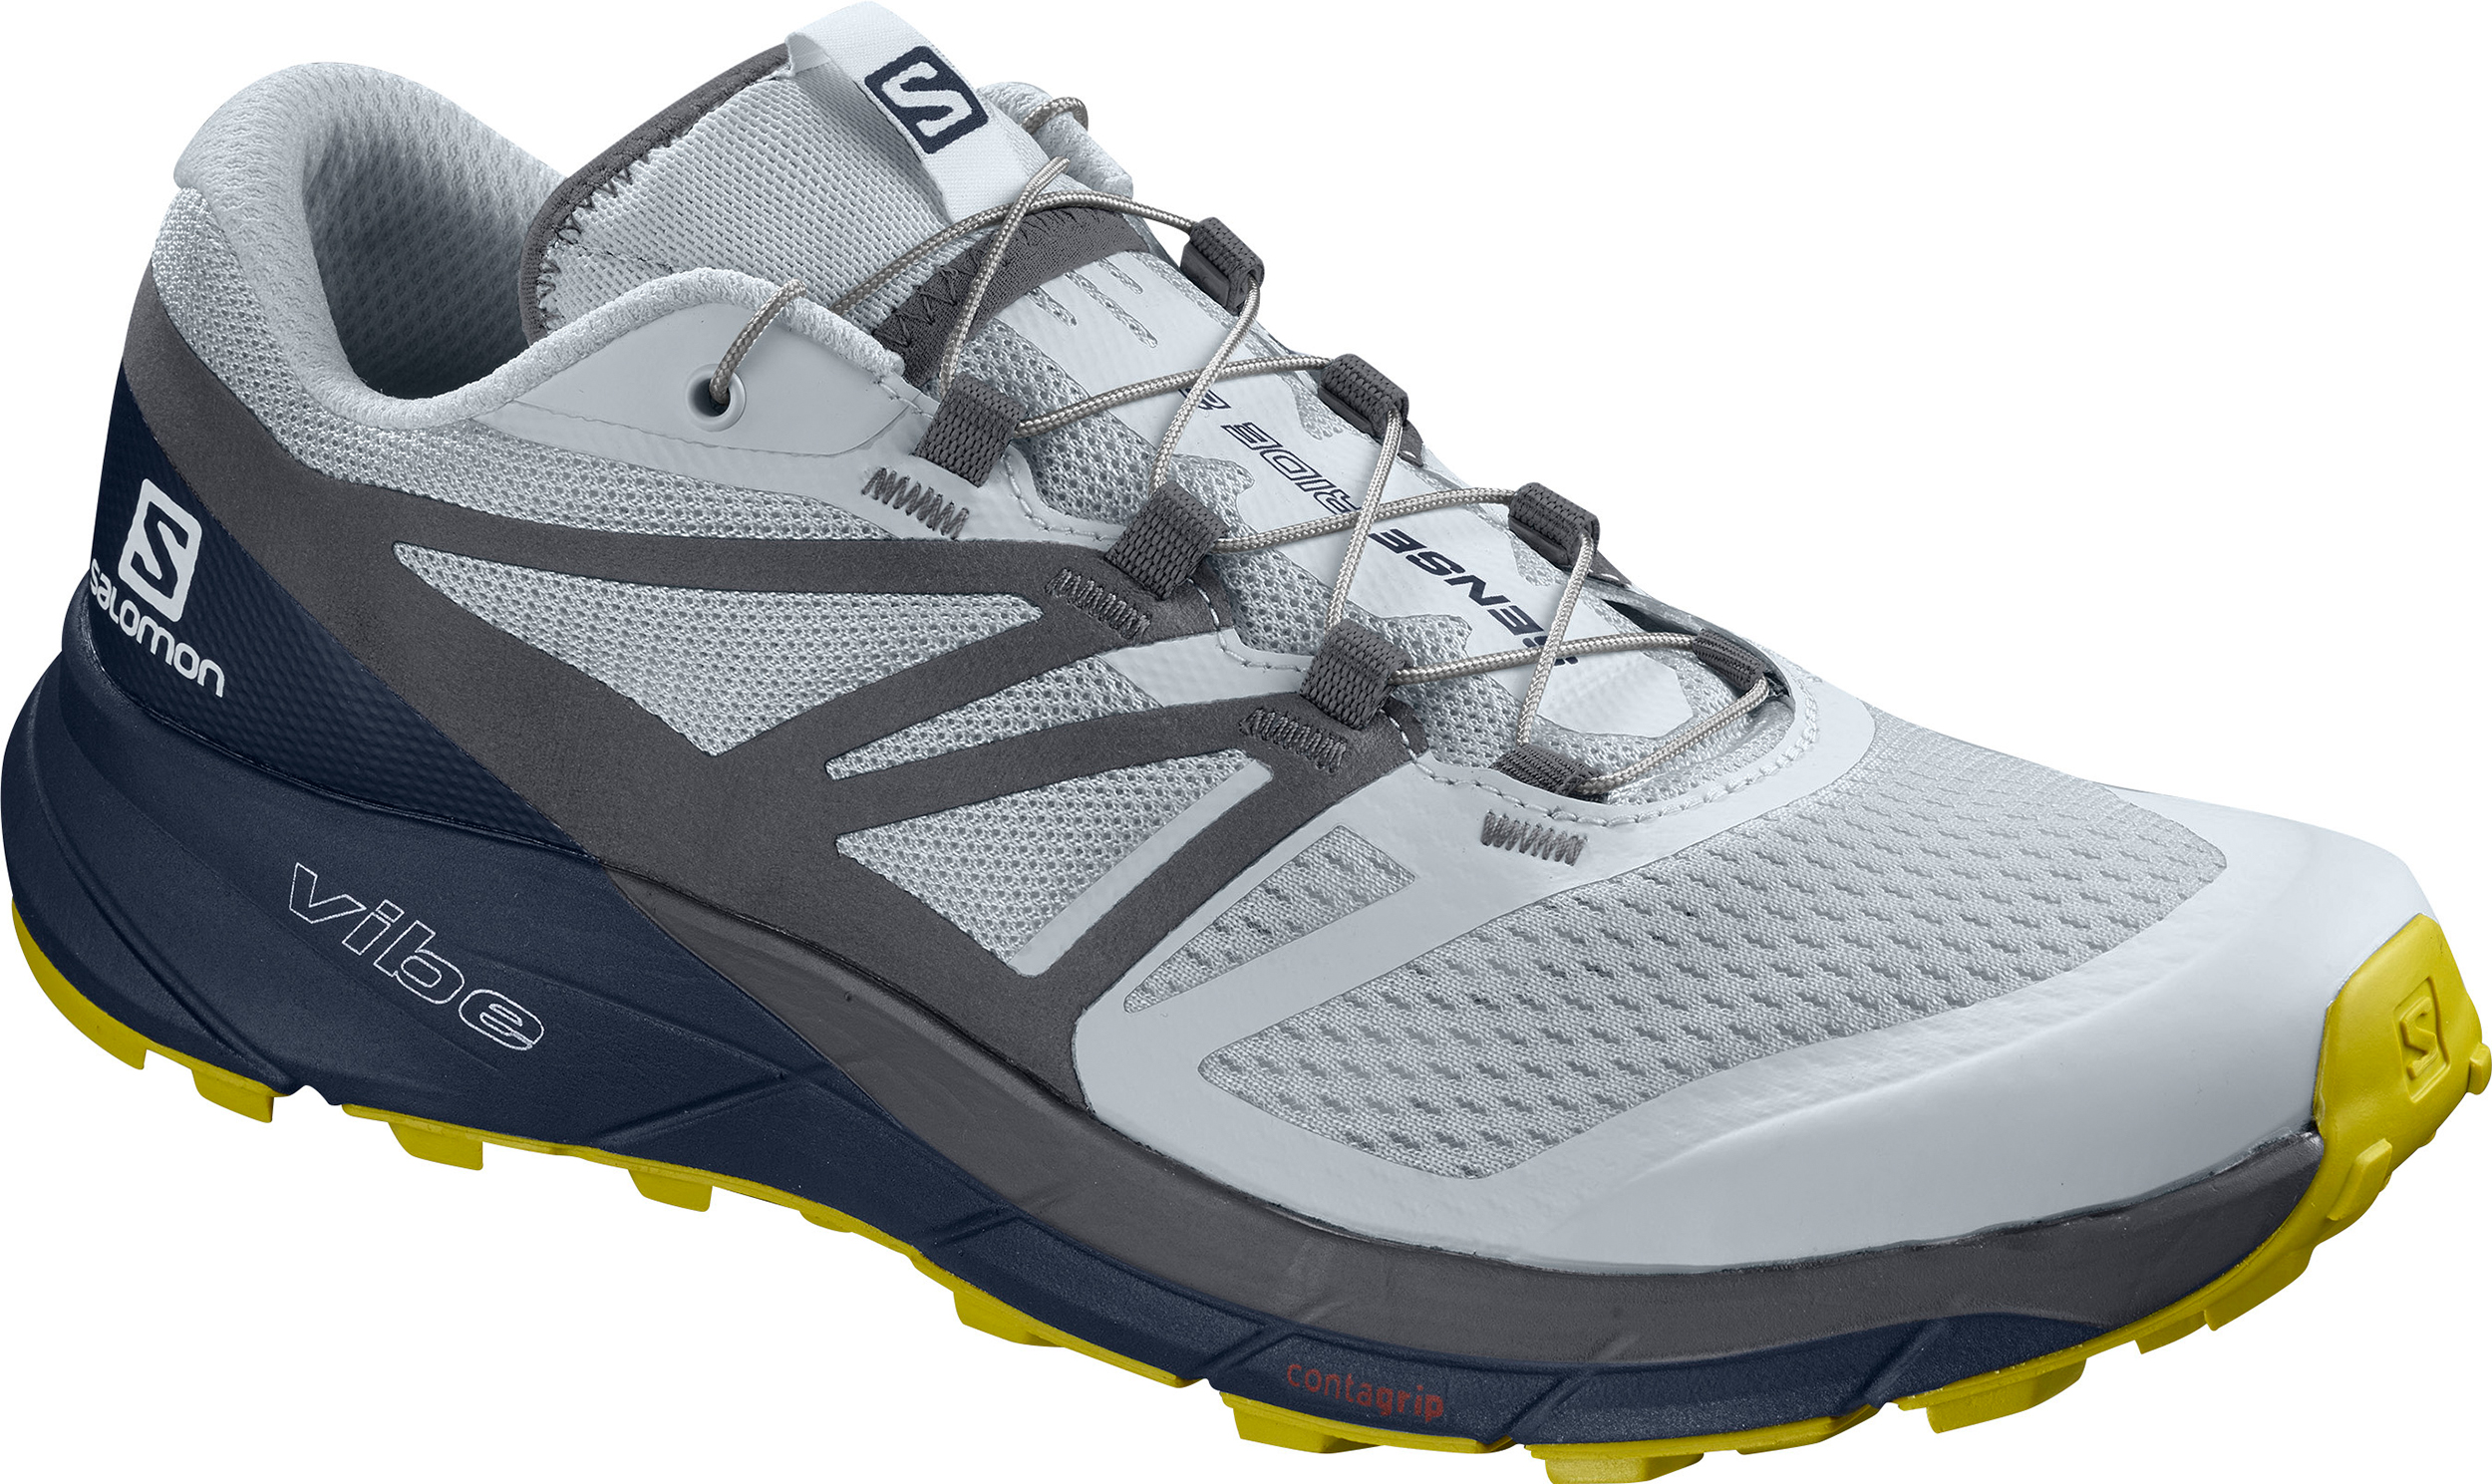 cc90870a8c Salomon Sense Ride 2 Trail Running Shoes - Men's | MEC